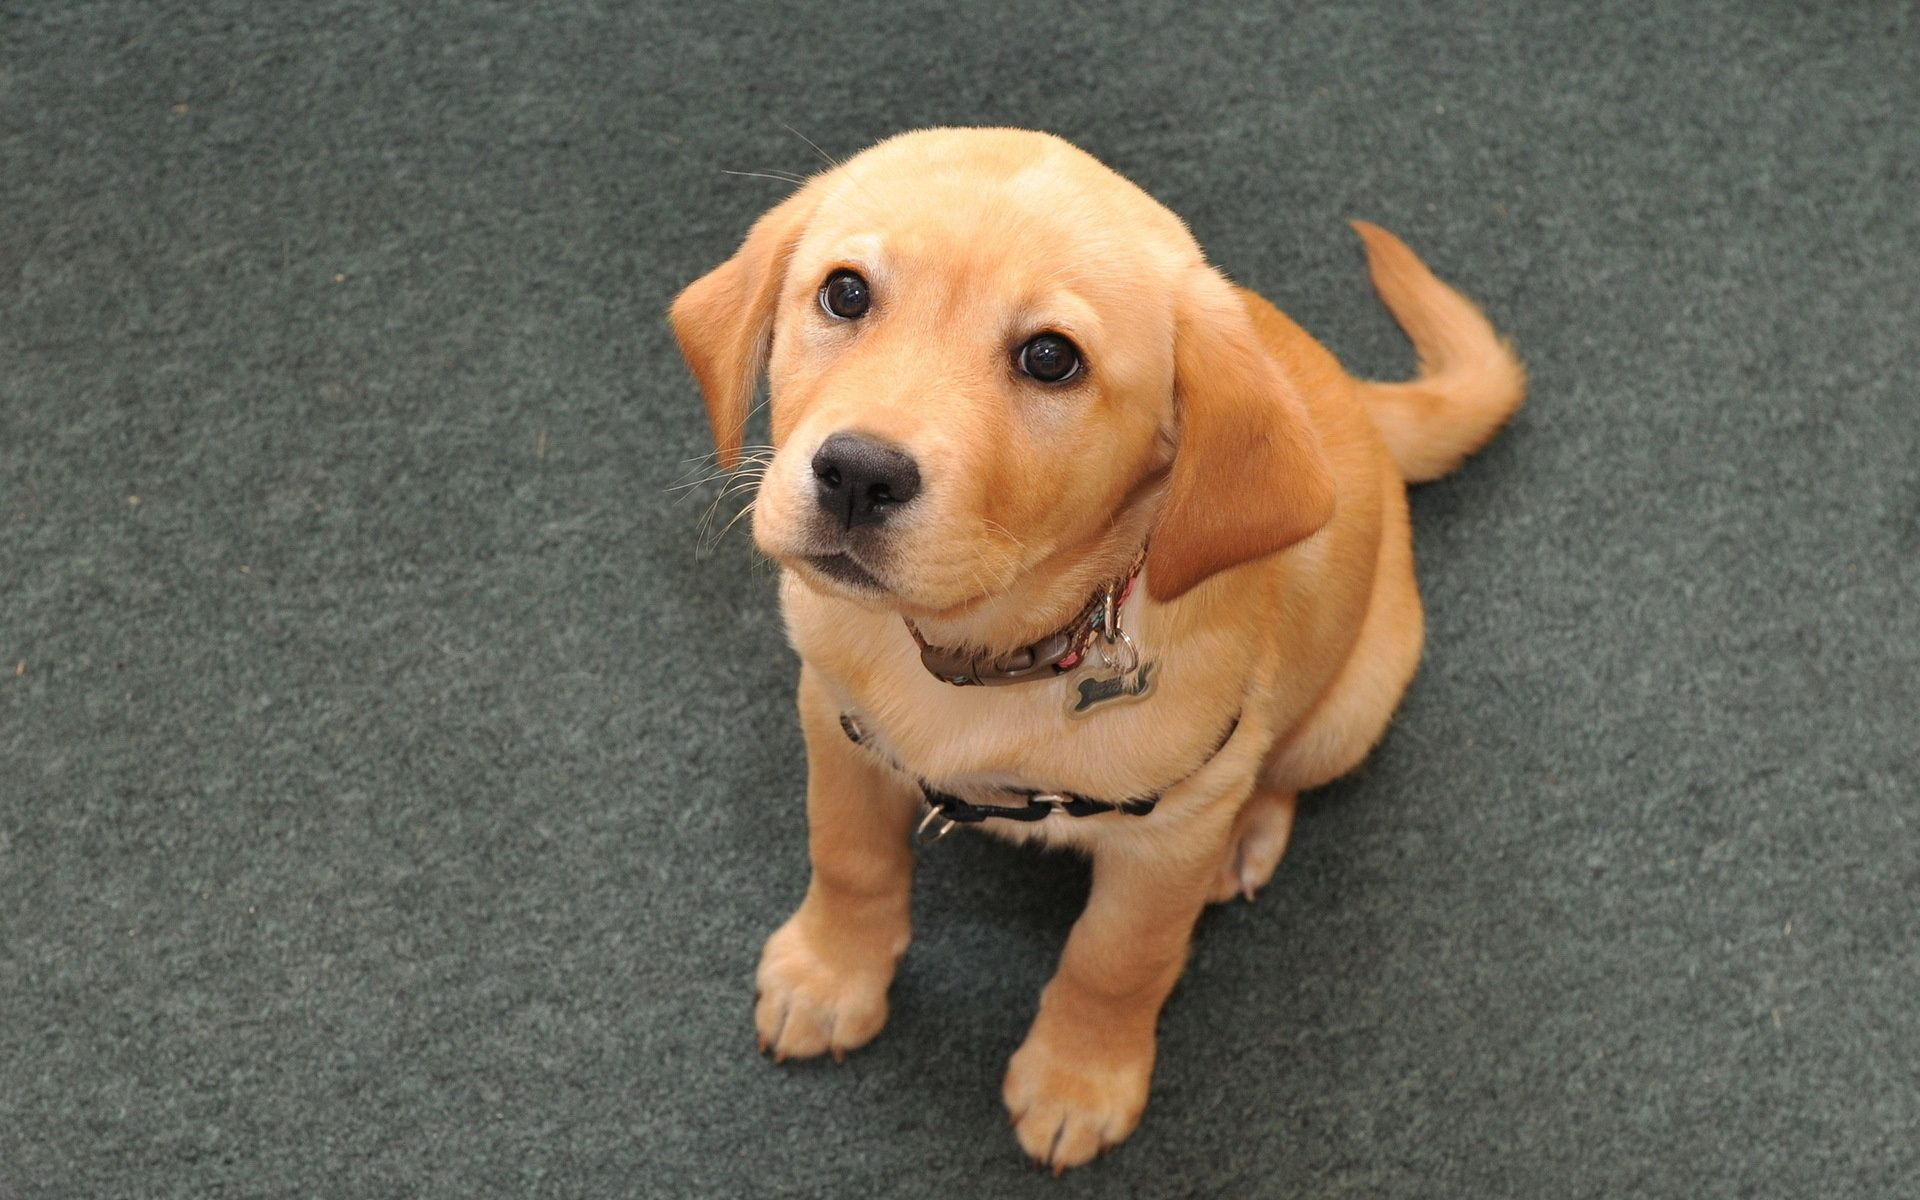 97974 download wallpaper Animals, Puppy, Muzzle, Small, Sit screensavers and pictures for free